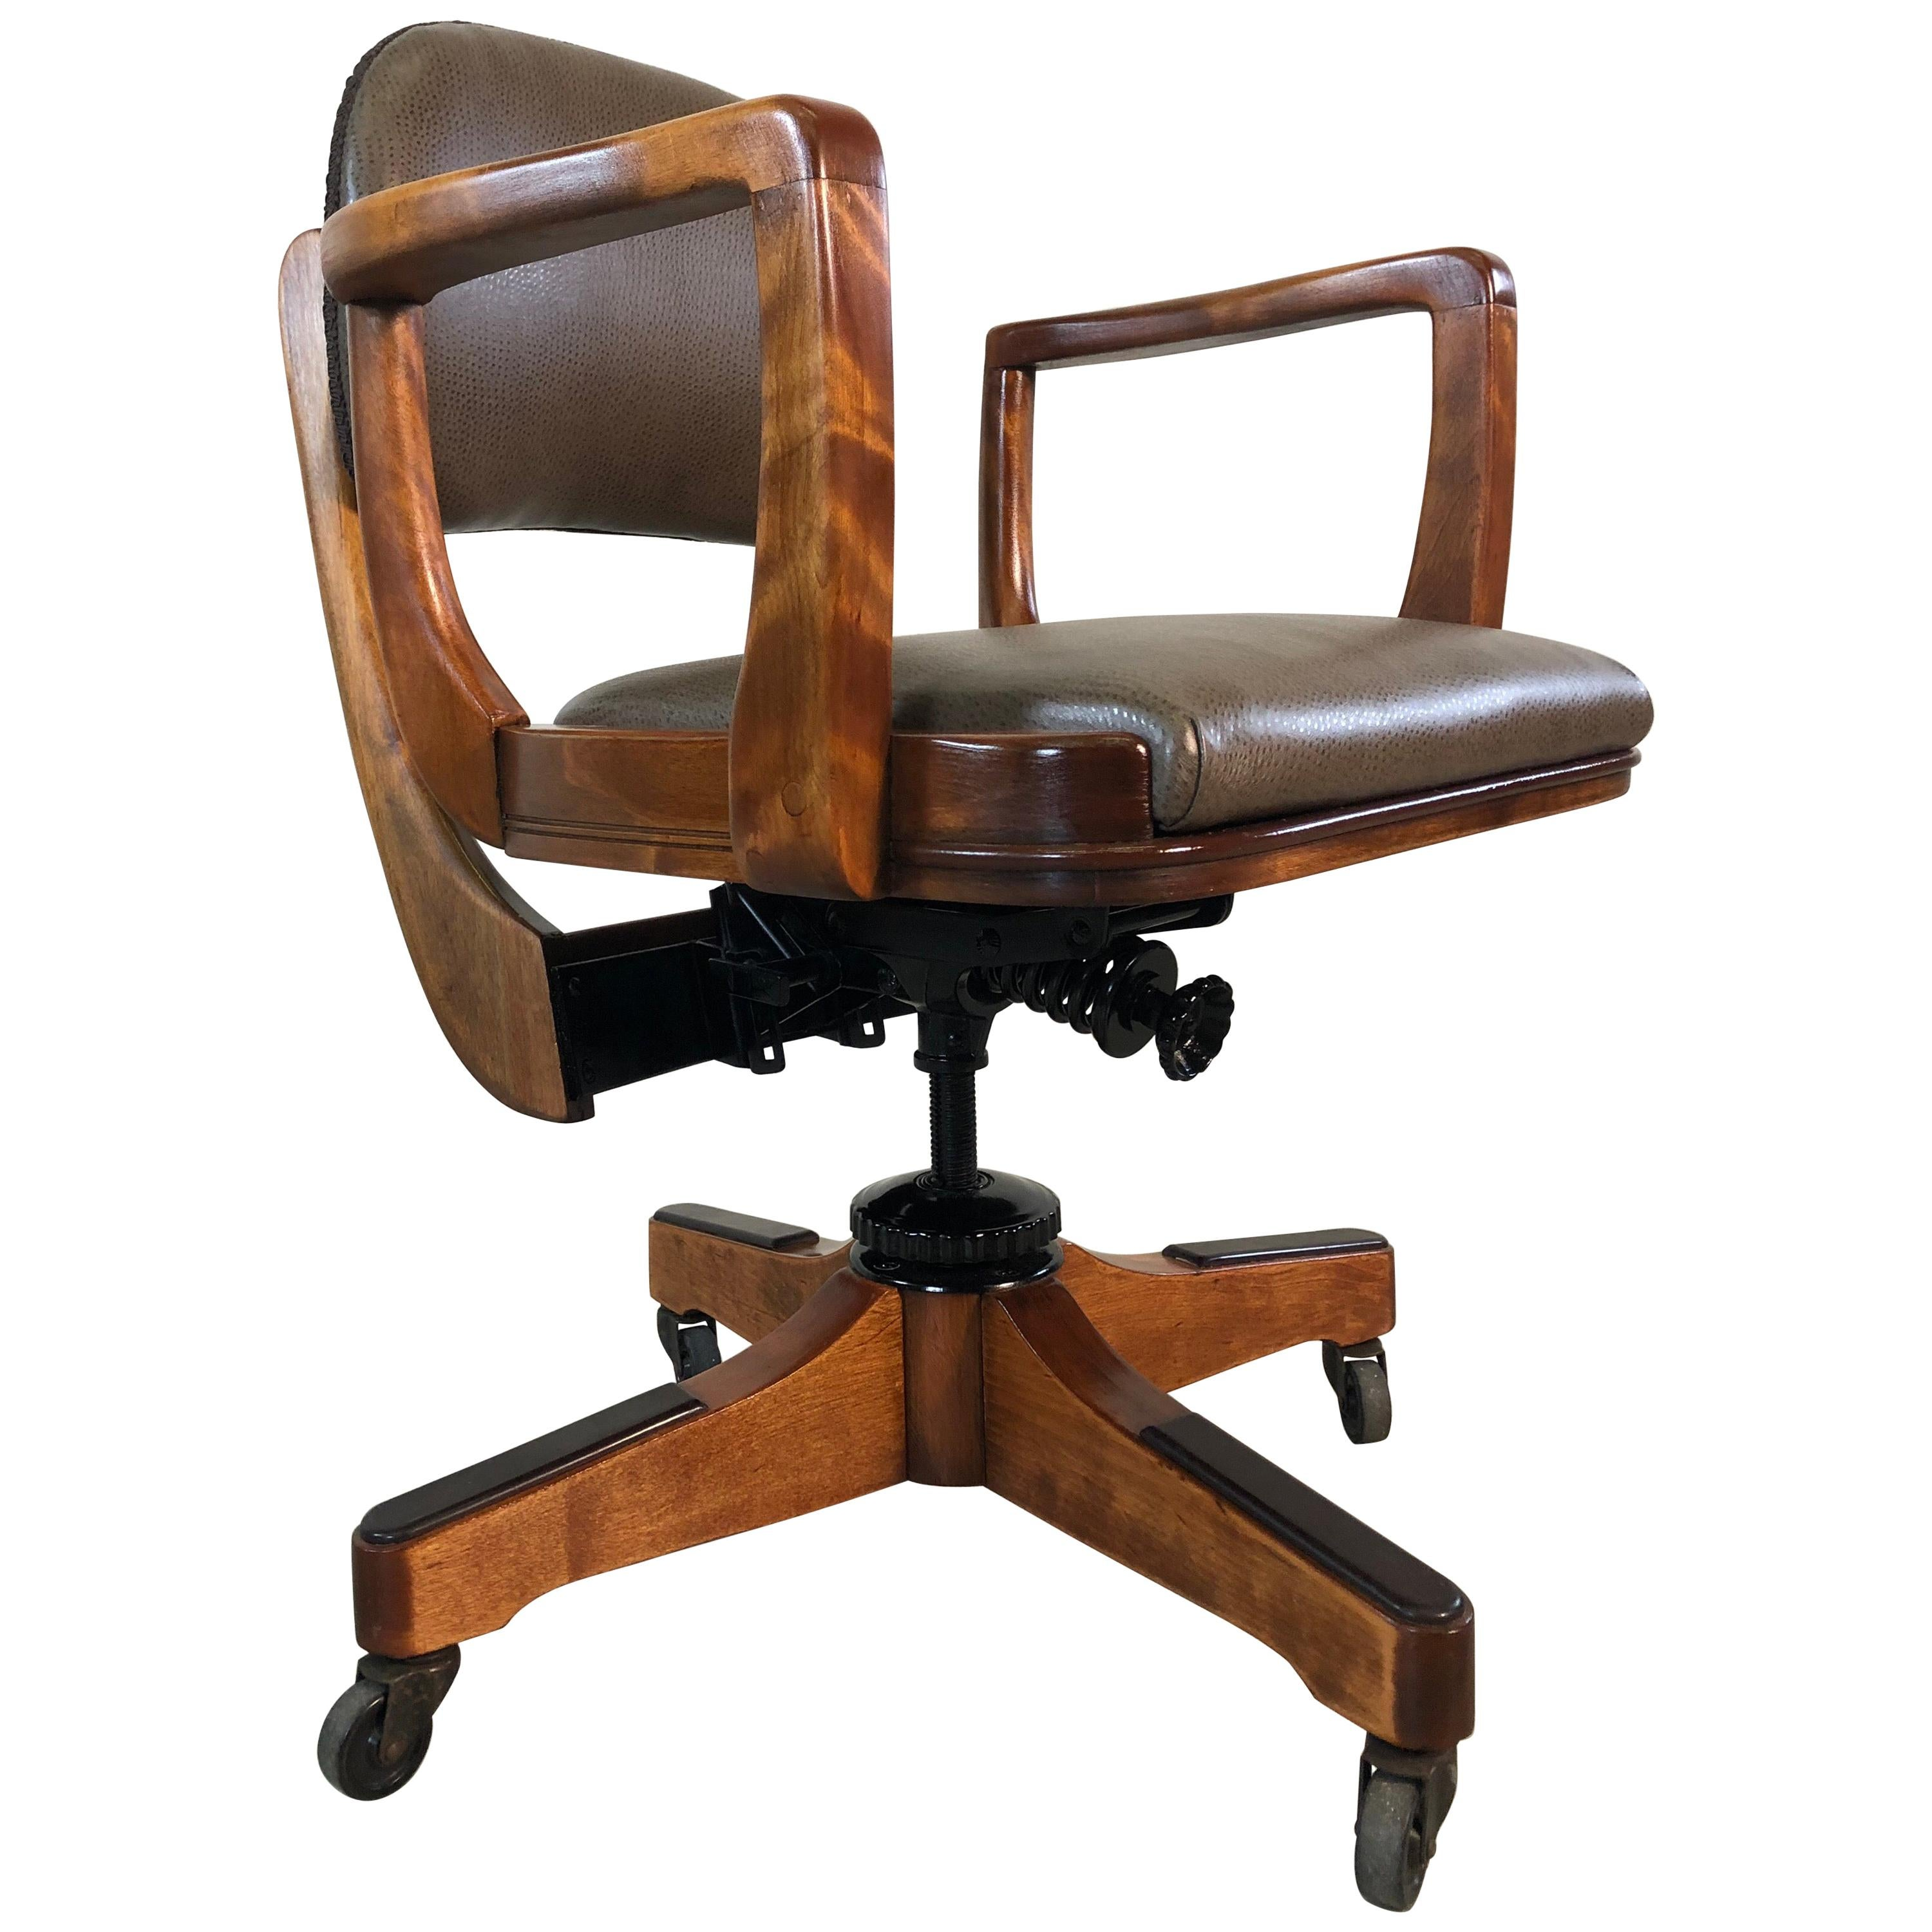 Peachy 1950S Sikes Co Swivel Office Chair For Sale At 1Stdibs Machost Co Dining Chair Design Ideas Machostcouk